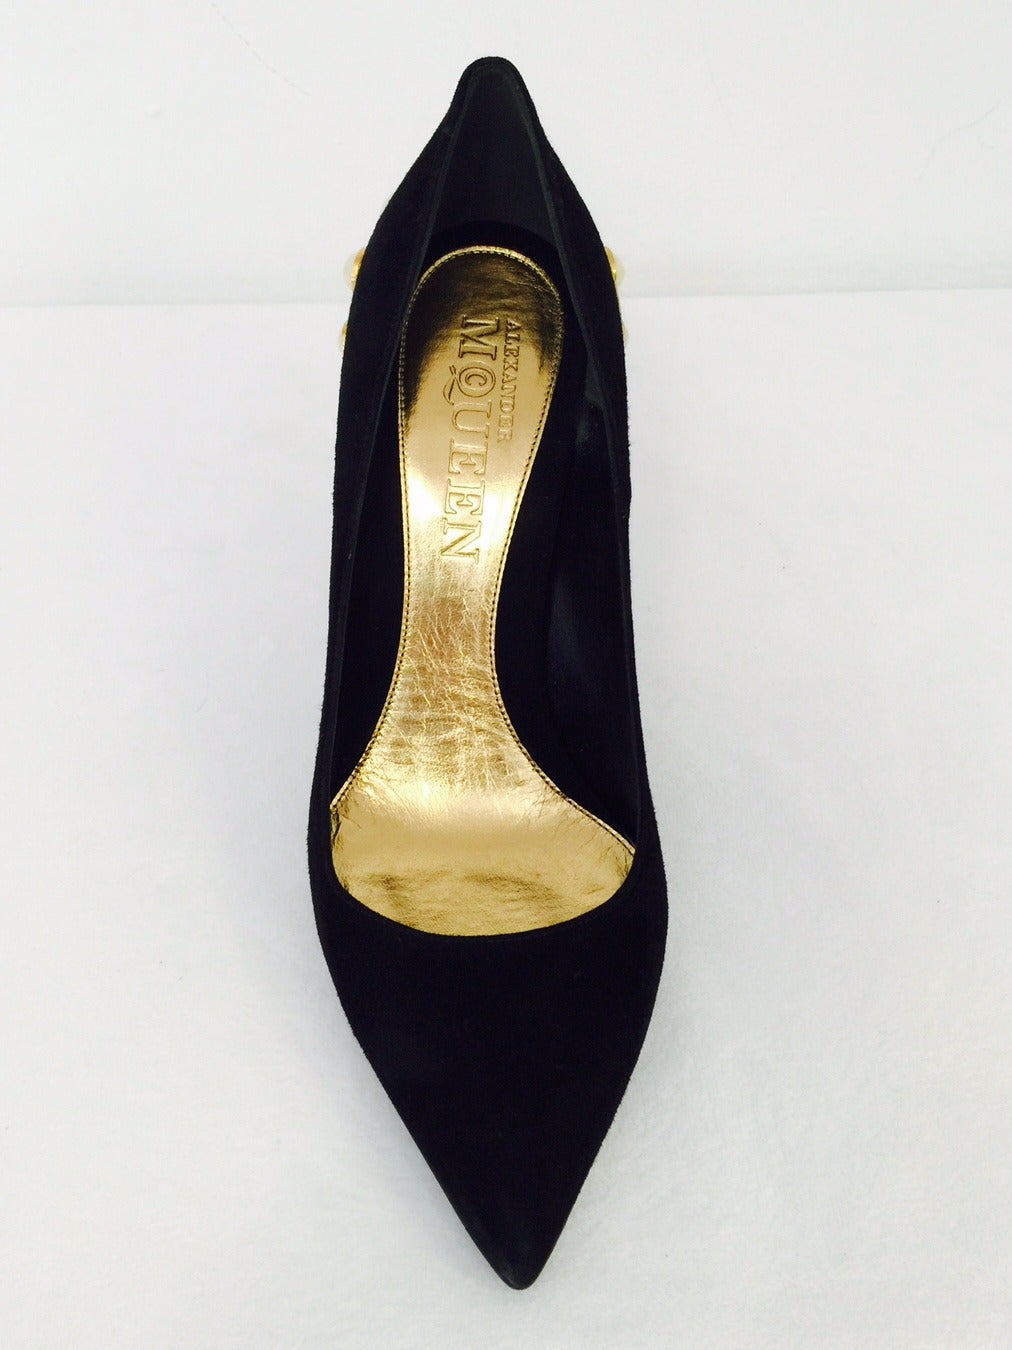 Awe-Inspiring Alexander McQueen Black Suede Evening Pumps with Pearls 3